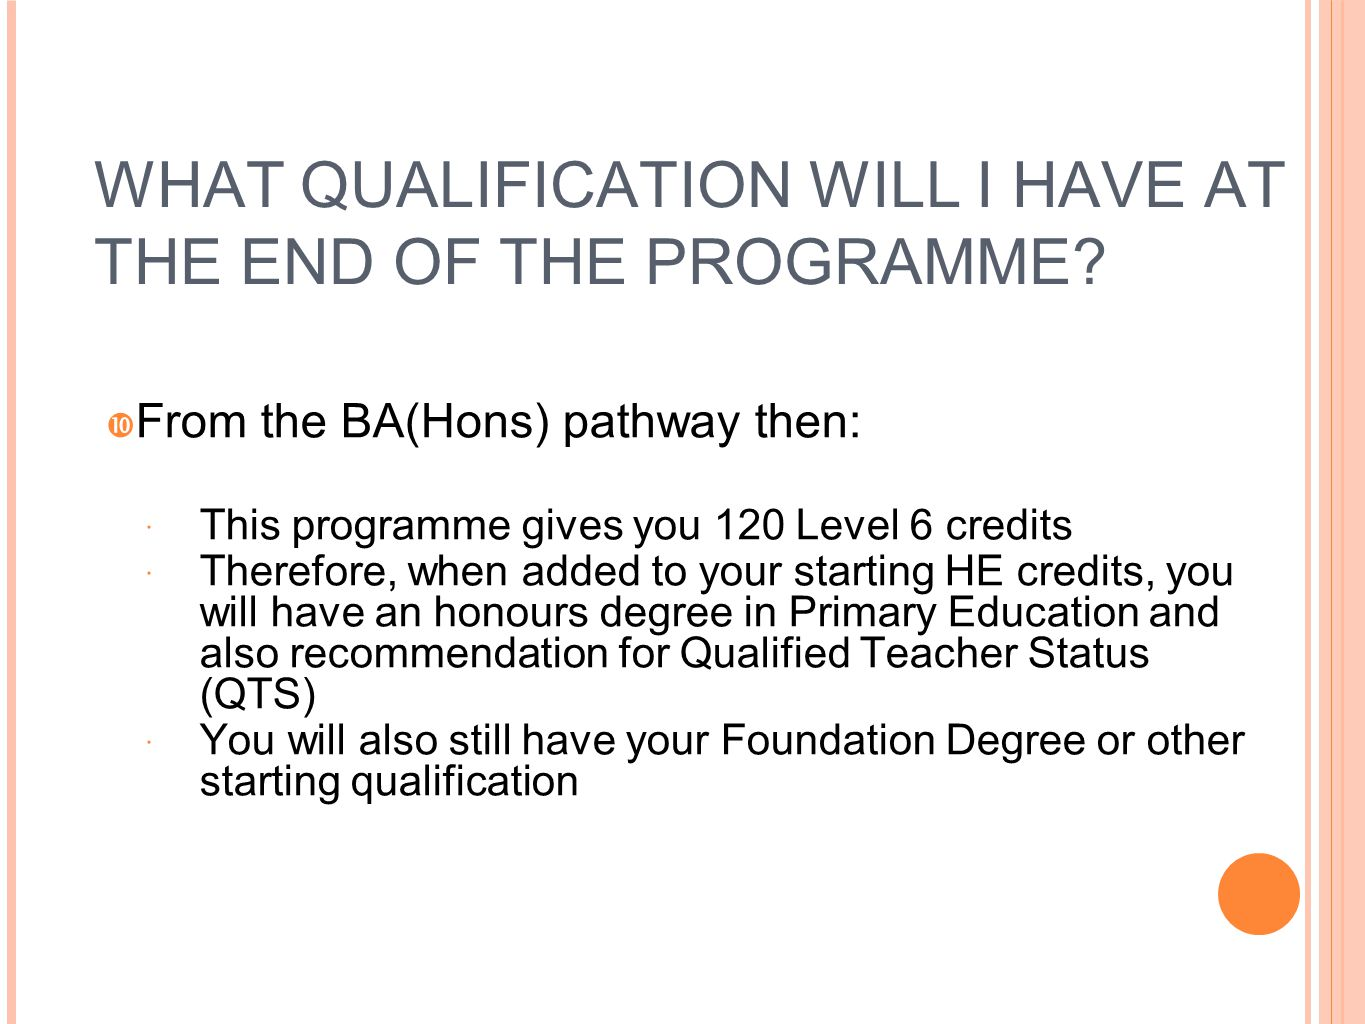 WHAT QUALIFICATION WILL I HAVE AT THE END OF THE PROGRAMME